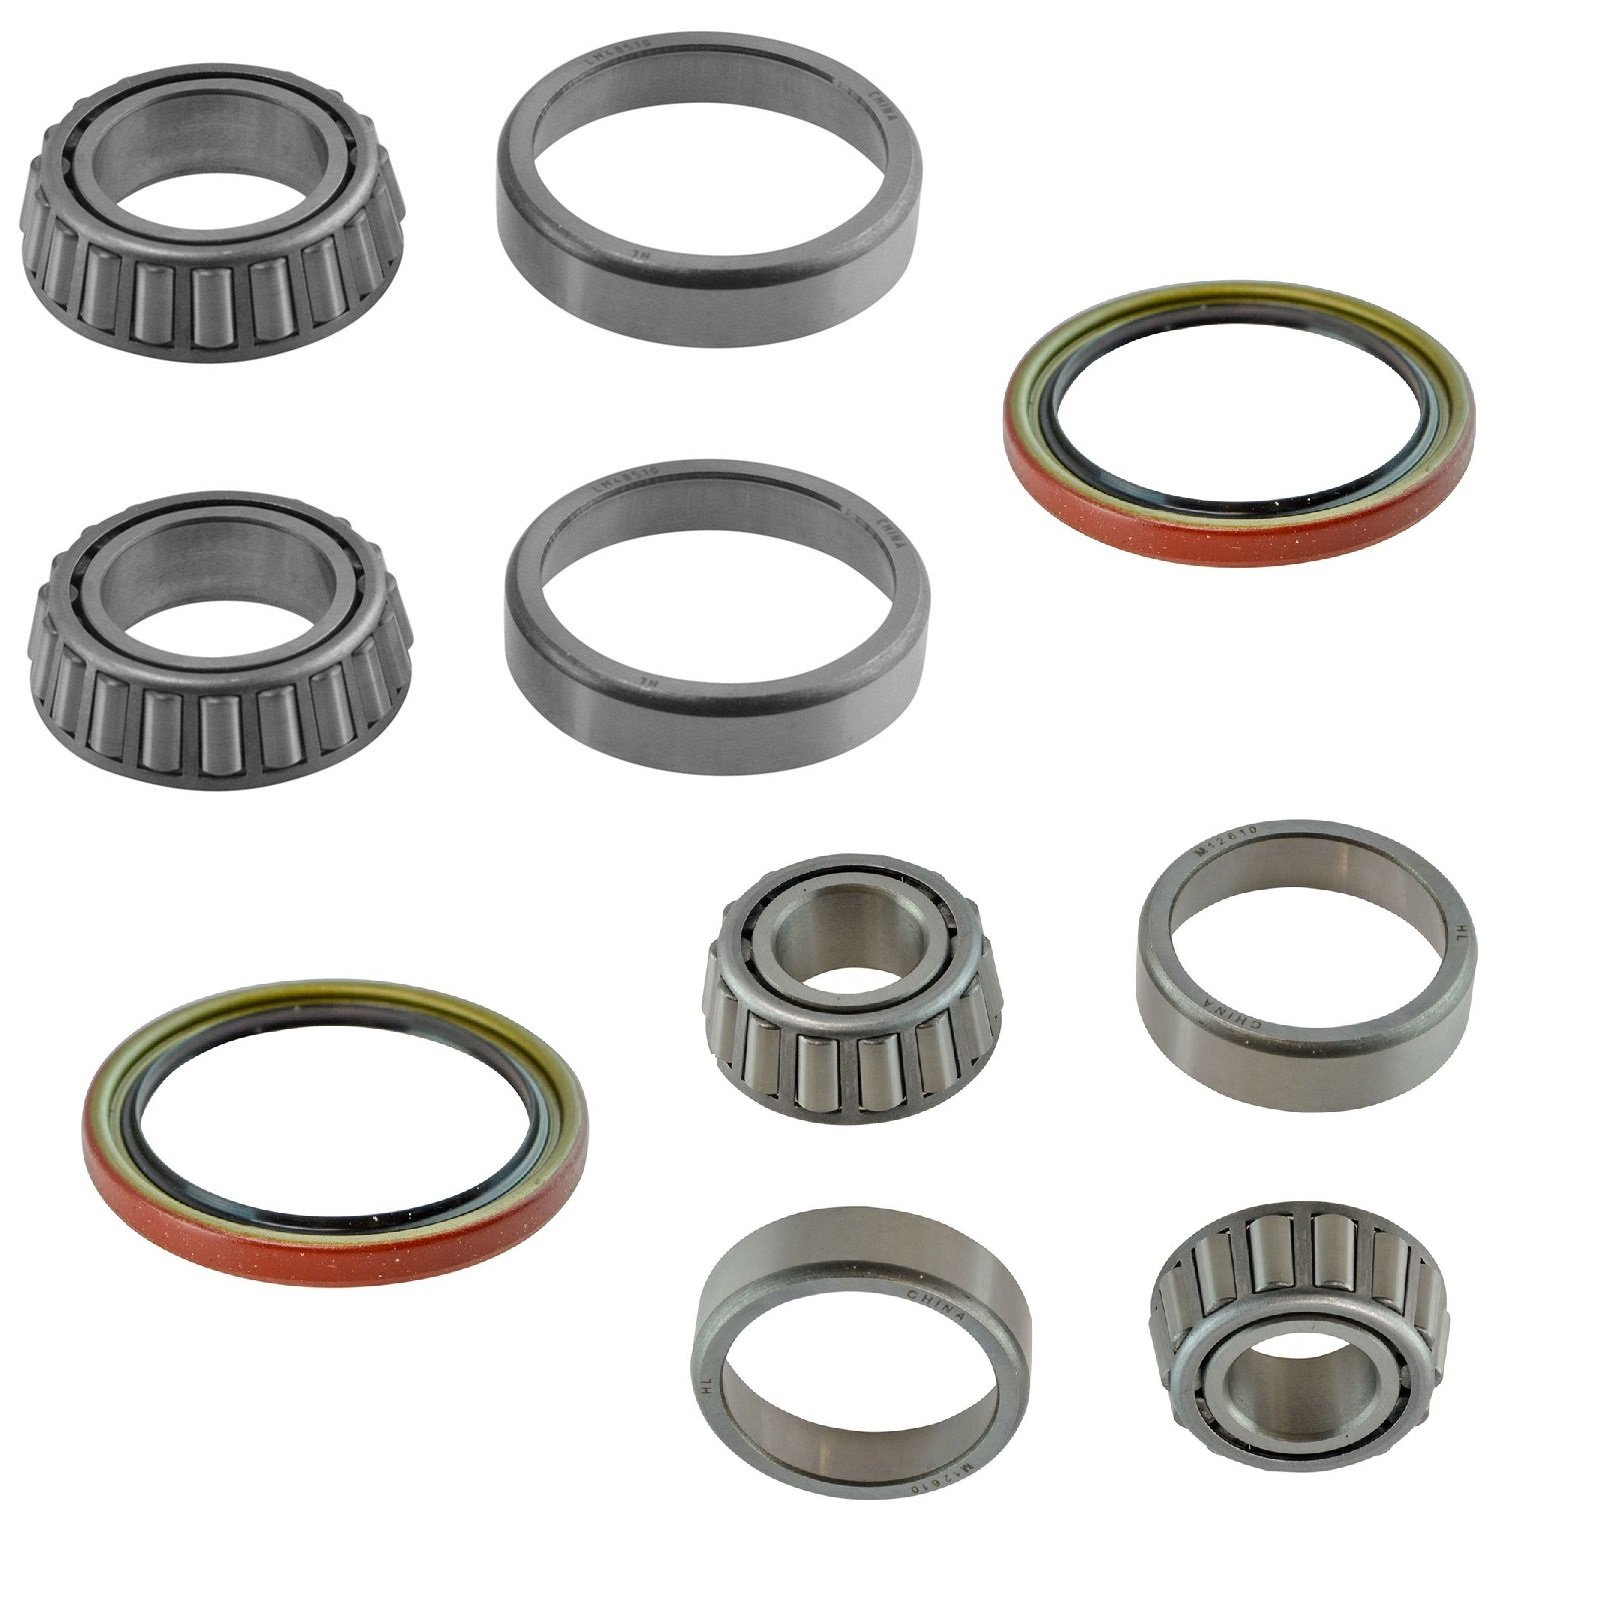 6 Piece Inner & Outer Wheel Bearing w/Seal Kit LH & RH Sides for GMC Chevy Truck by TRQ